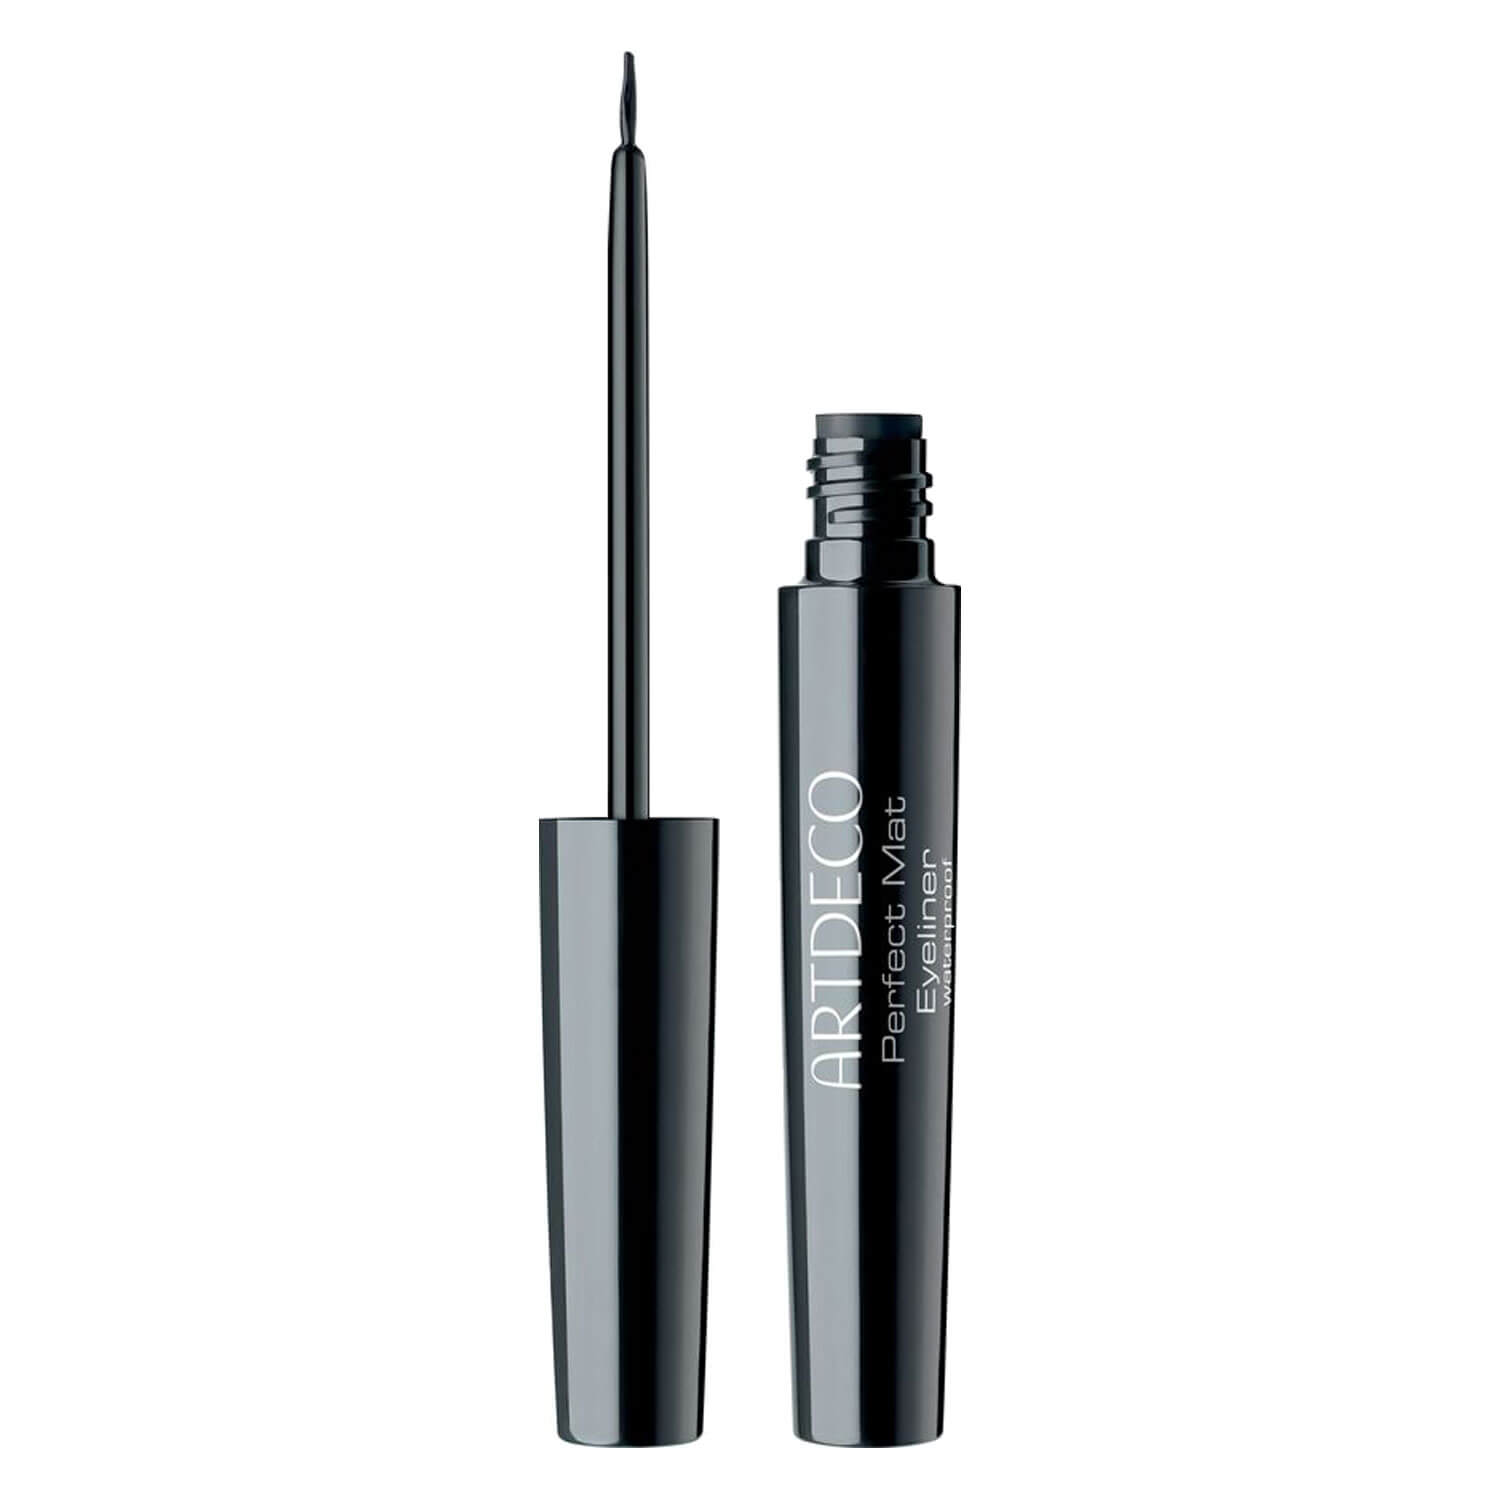 Artdeco Eyeliner - Perfect Mat Eyeliner Black Waterproof